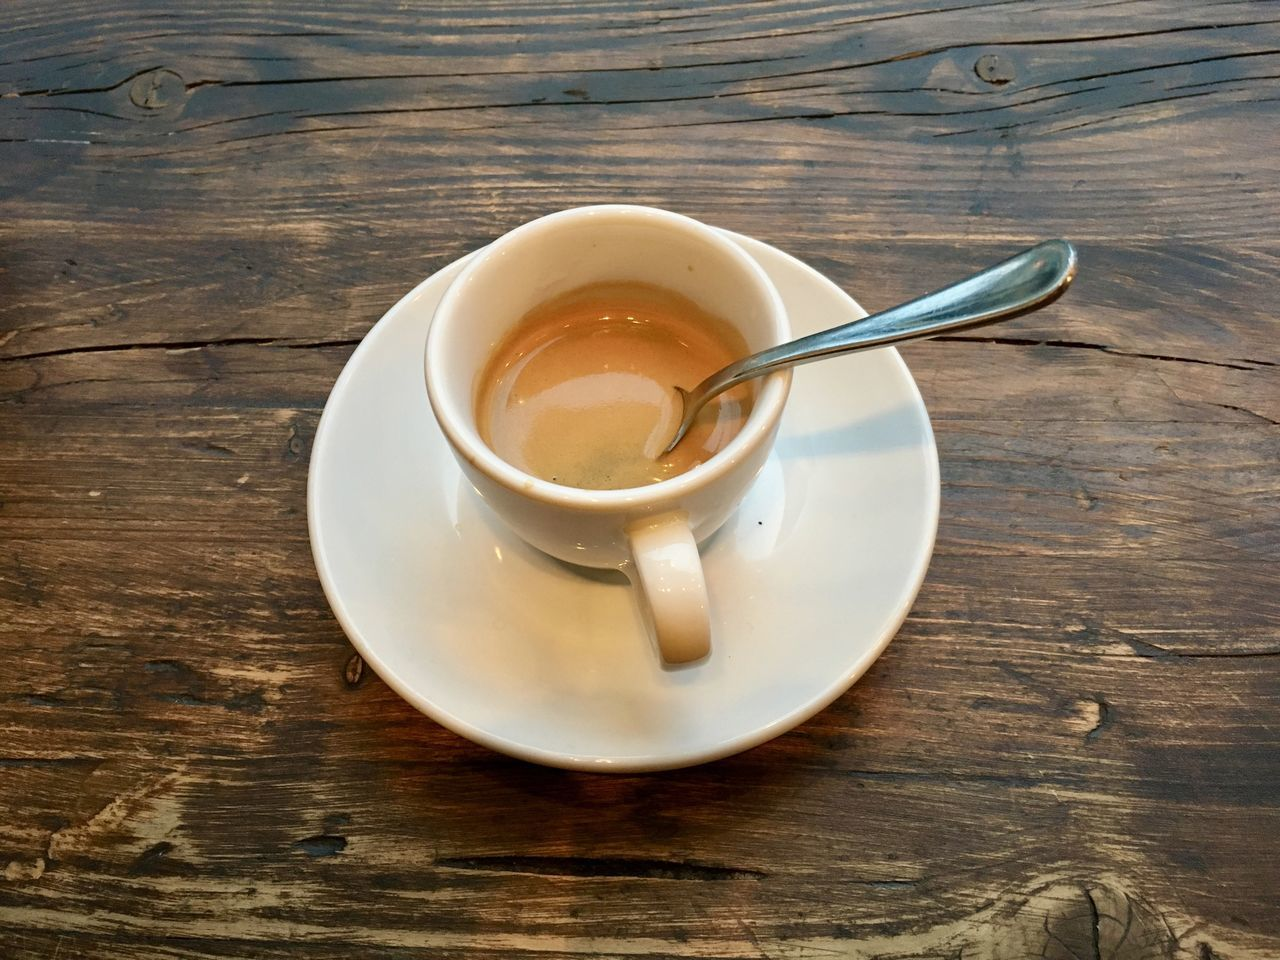 table, refreshment, food and drink, wood - material, drink, saucer, coffee cup, high angle view, no people, freshness, indoors, close-up, day